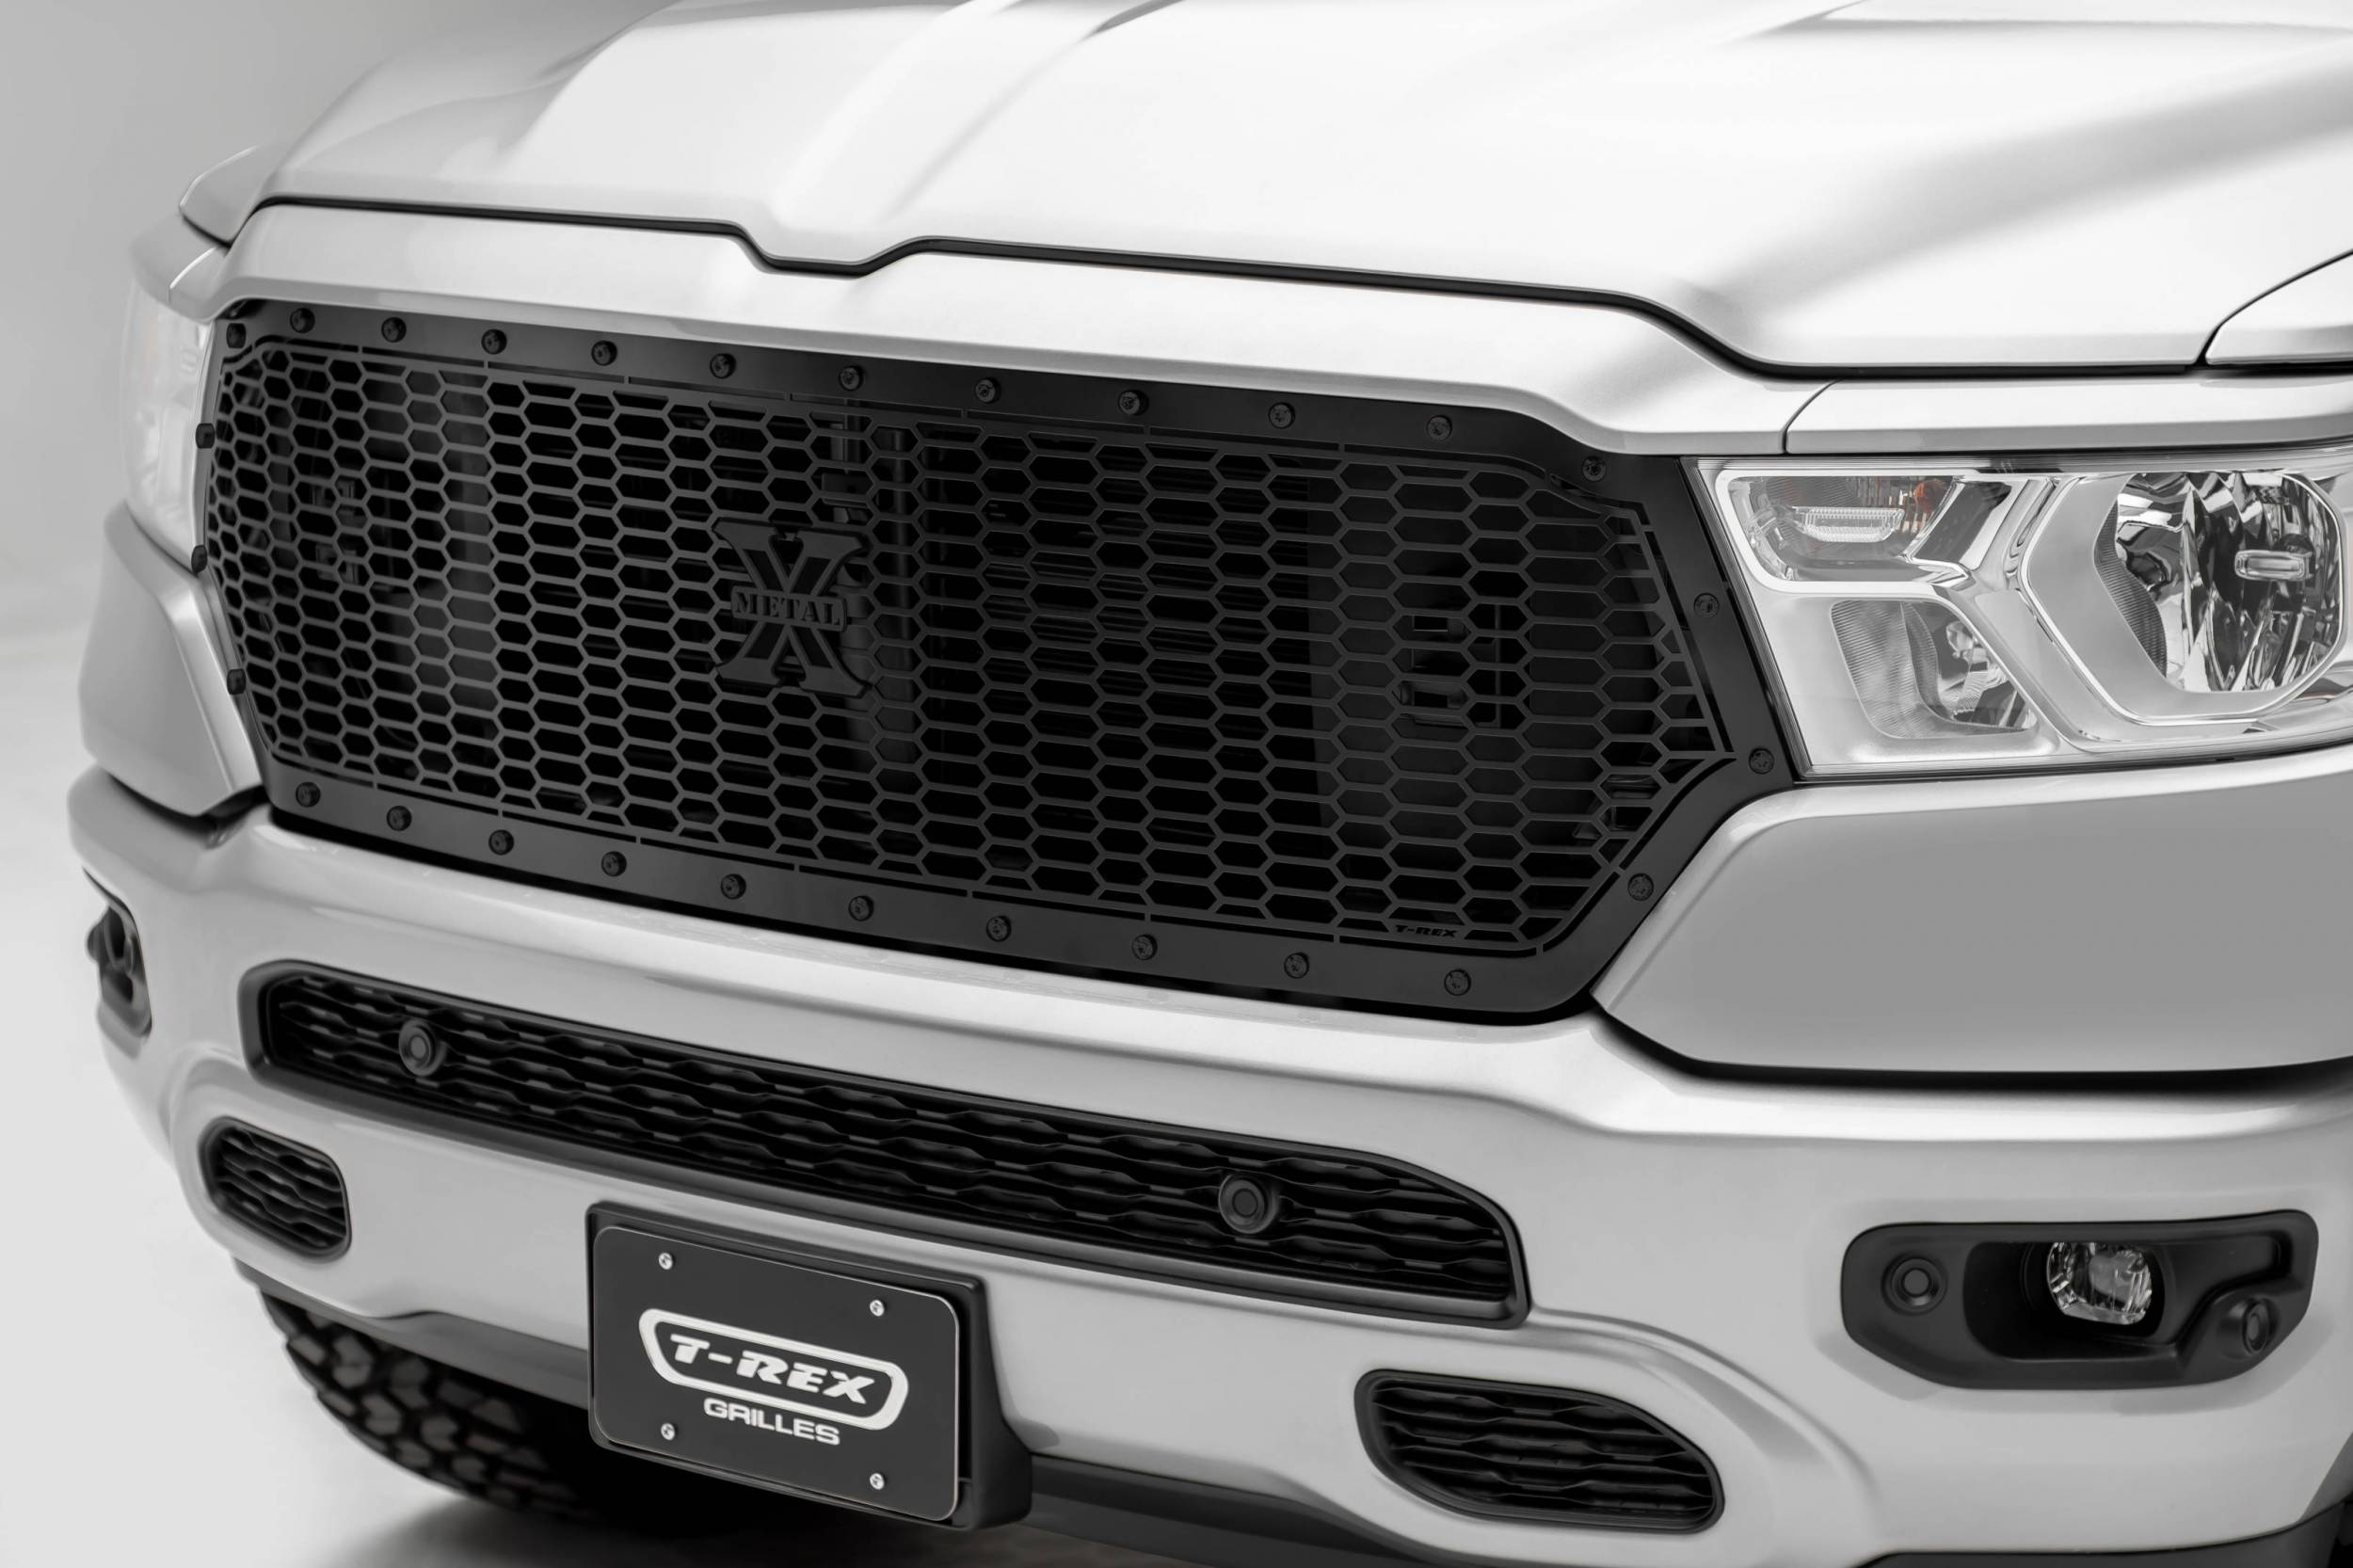 T-REX Grilles - 2019-2021 Ram 1500 Laramie, Lone Star, Big Horn, Tradesman Stealth Laser X Grille, Black, 1 Pc, Replacement, Black Studs, Does Not Fit Vehicles with Camera - PN #7714651-BR